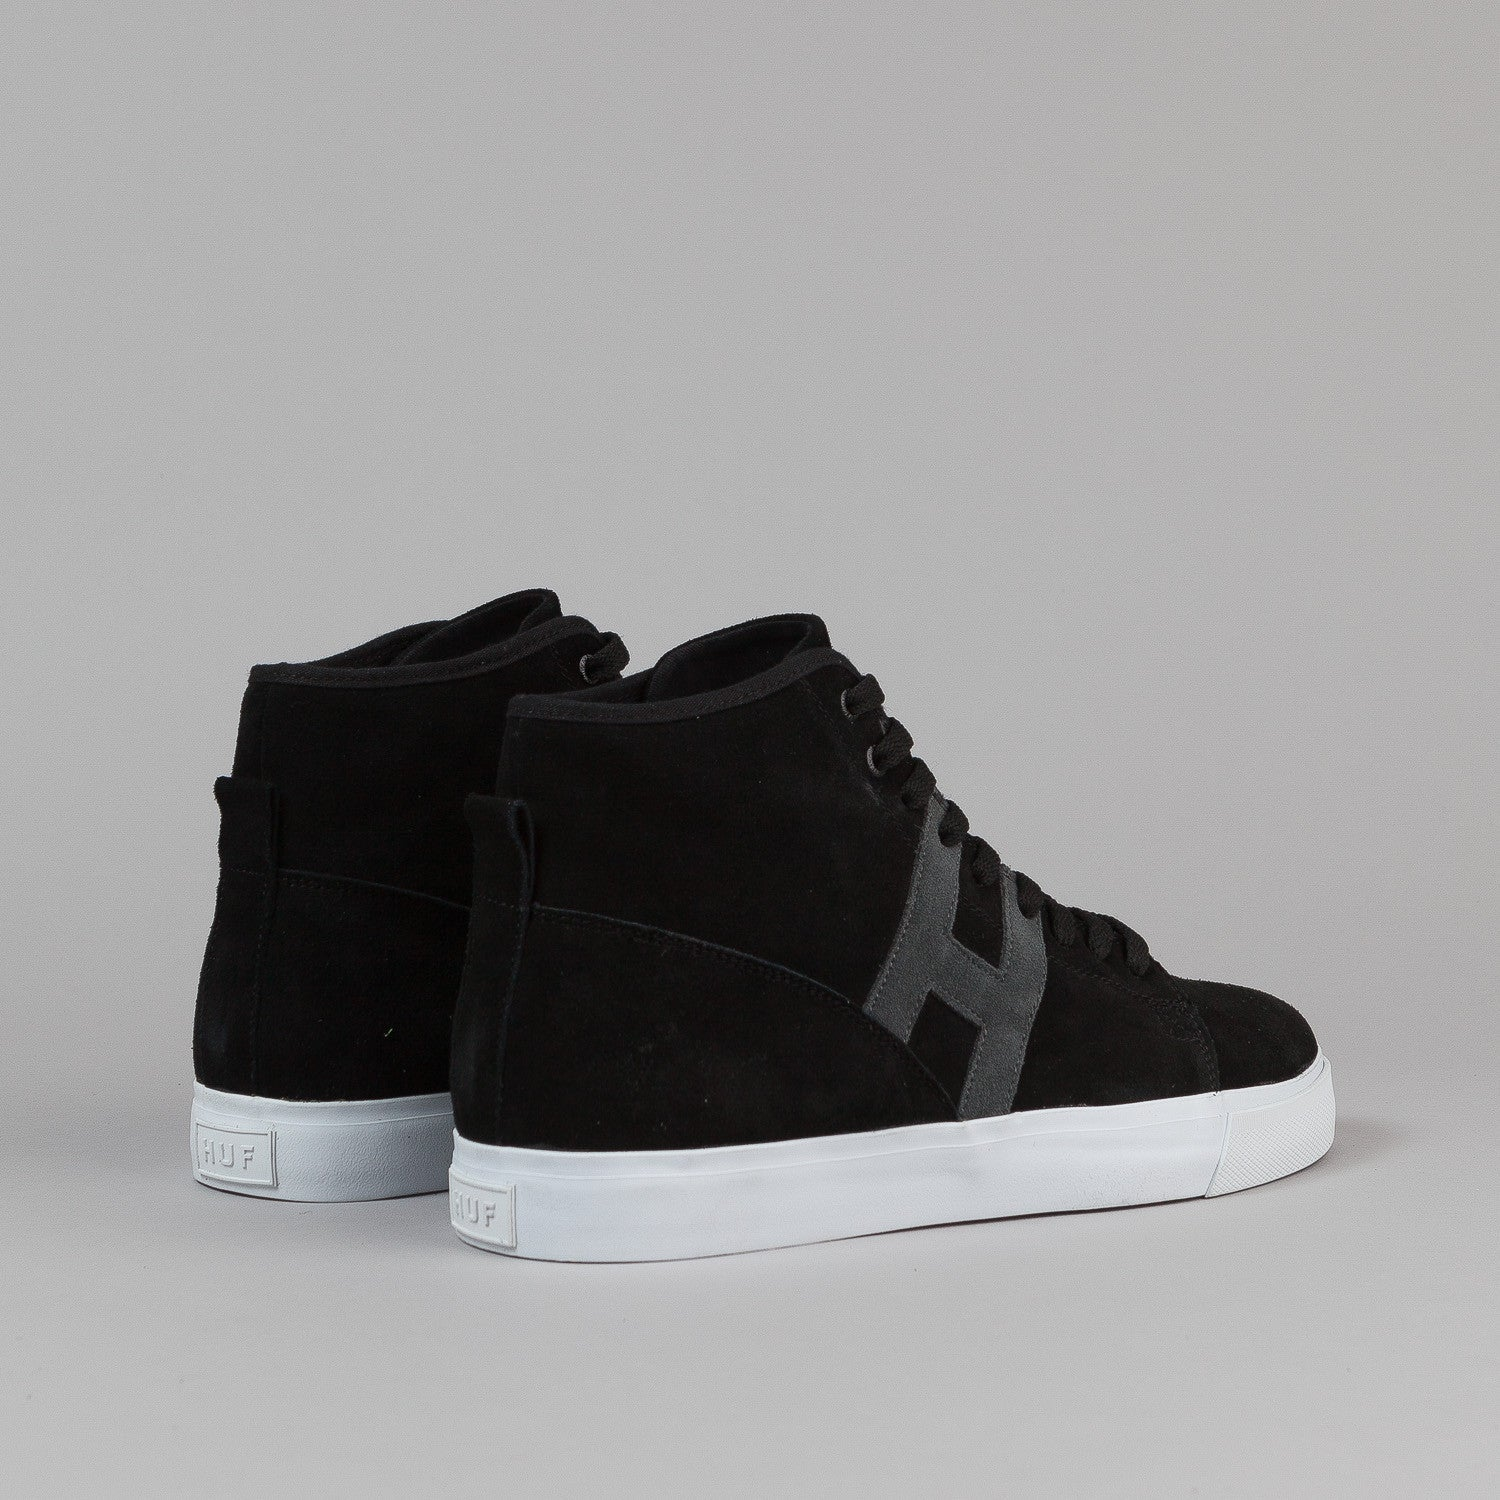 HUF Hupper Shoes - Black / Grey